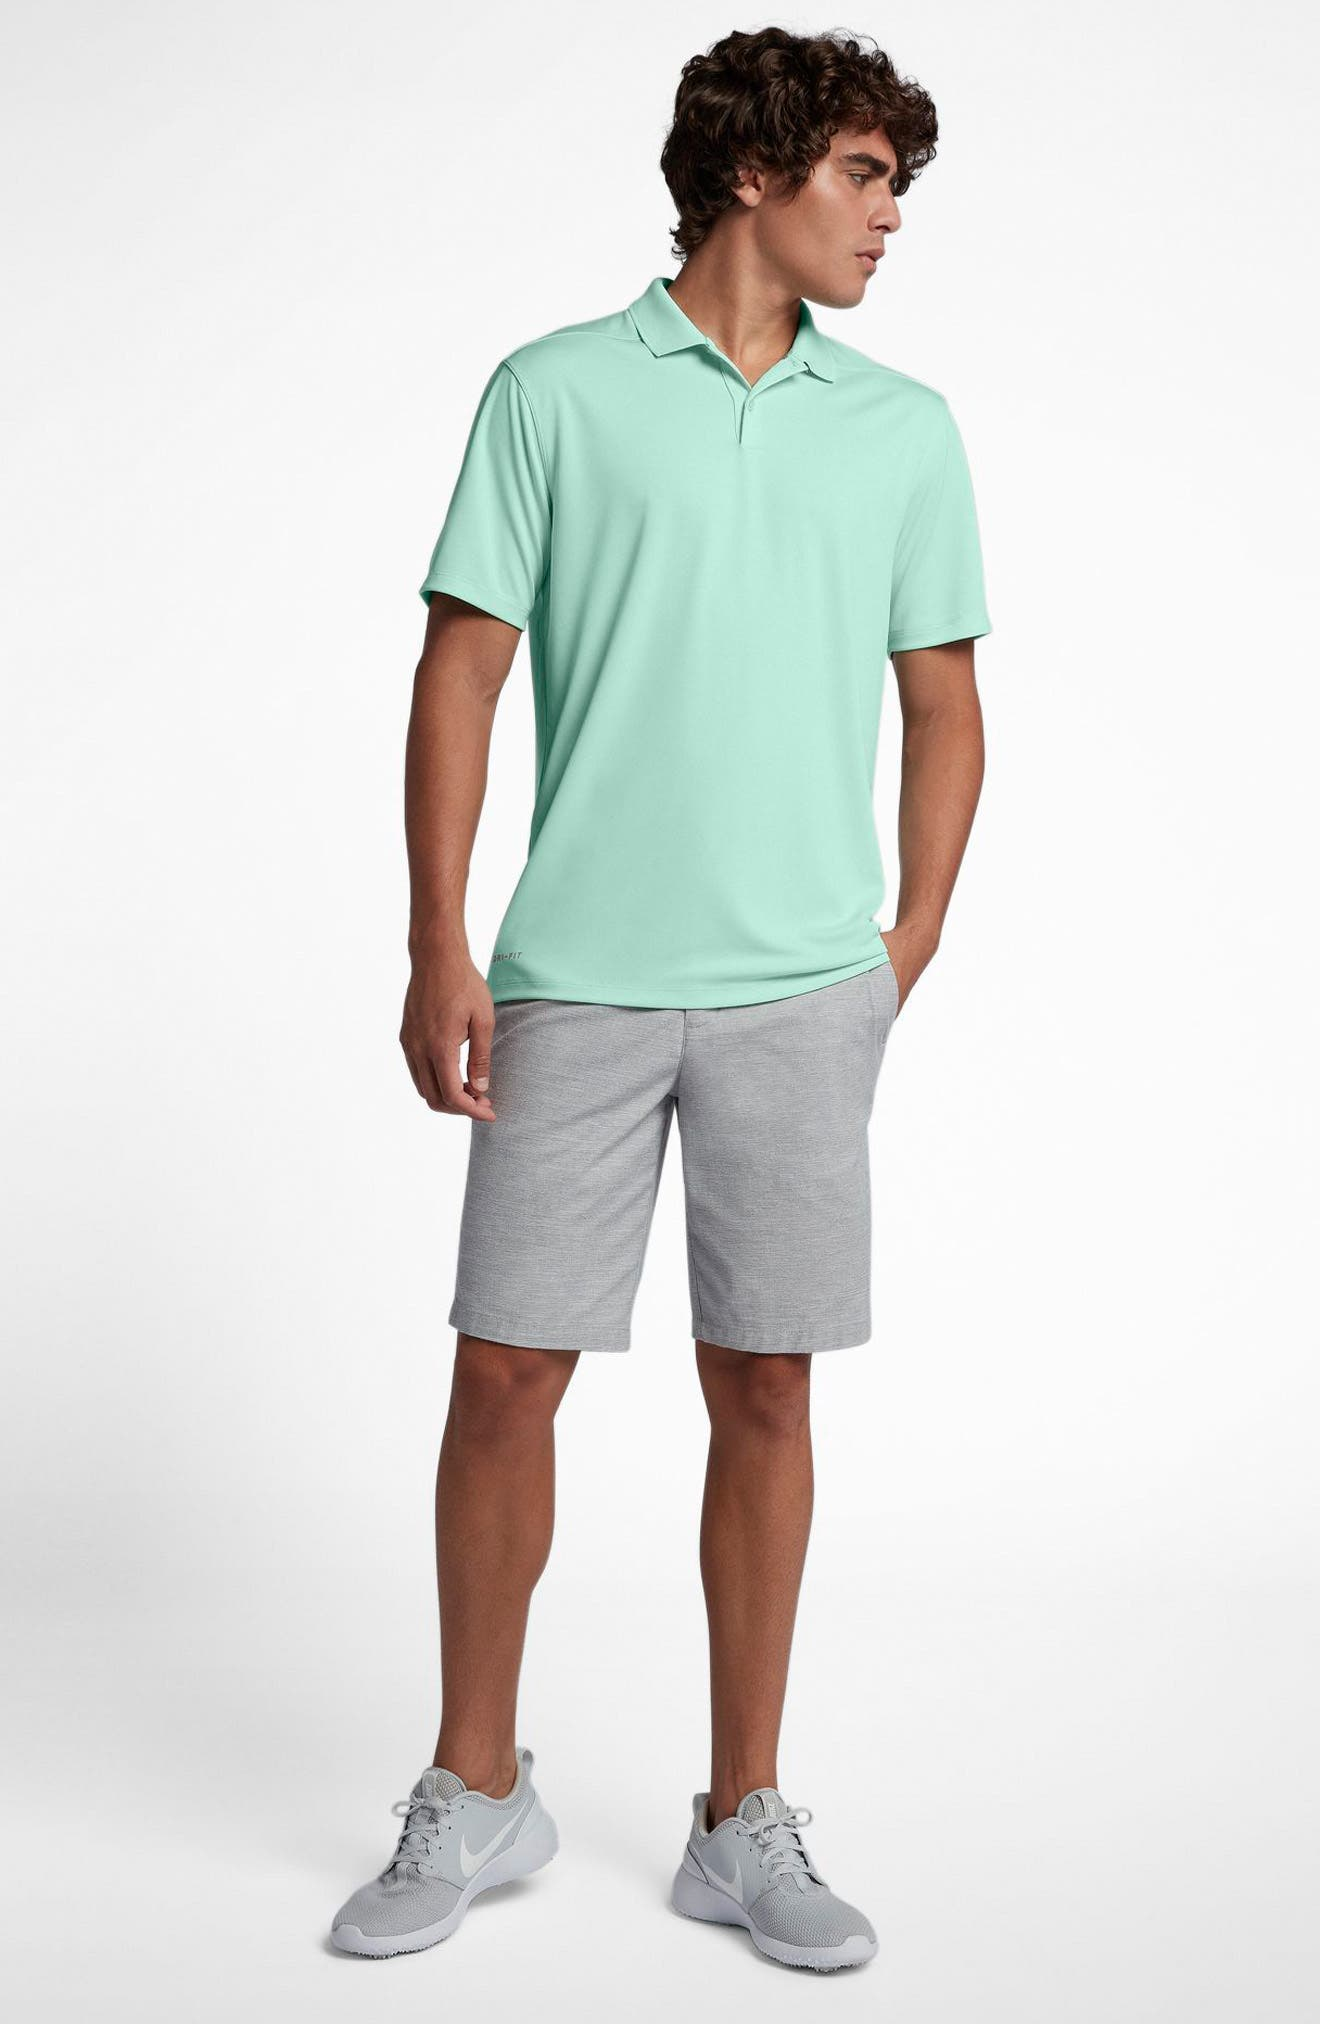 Dry Victory Golf Polo,                             Alternate thumbnail 6, color,                             IGLOO/ FLT SILVER